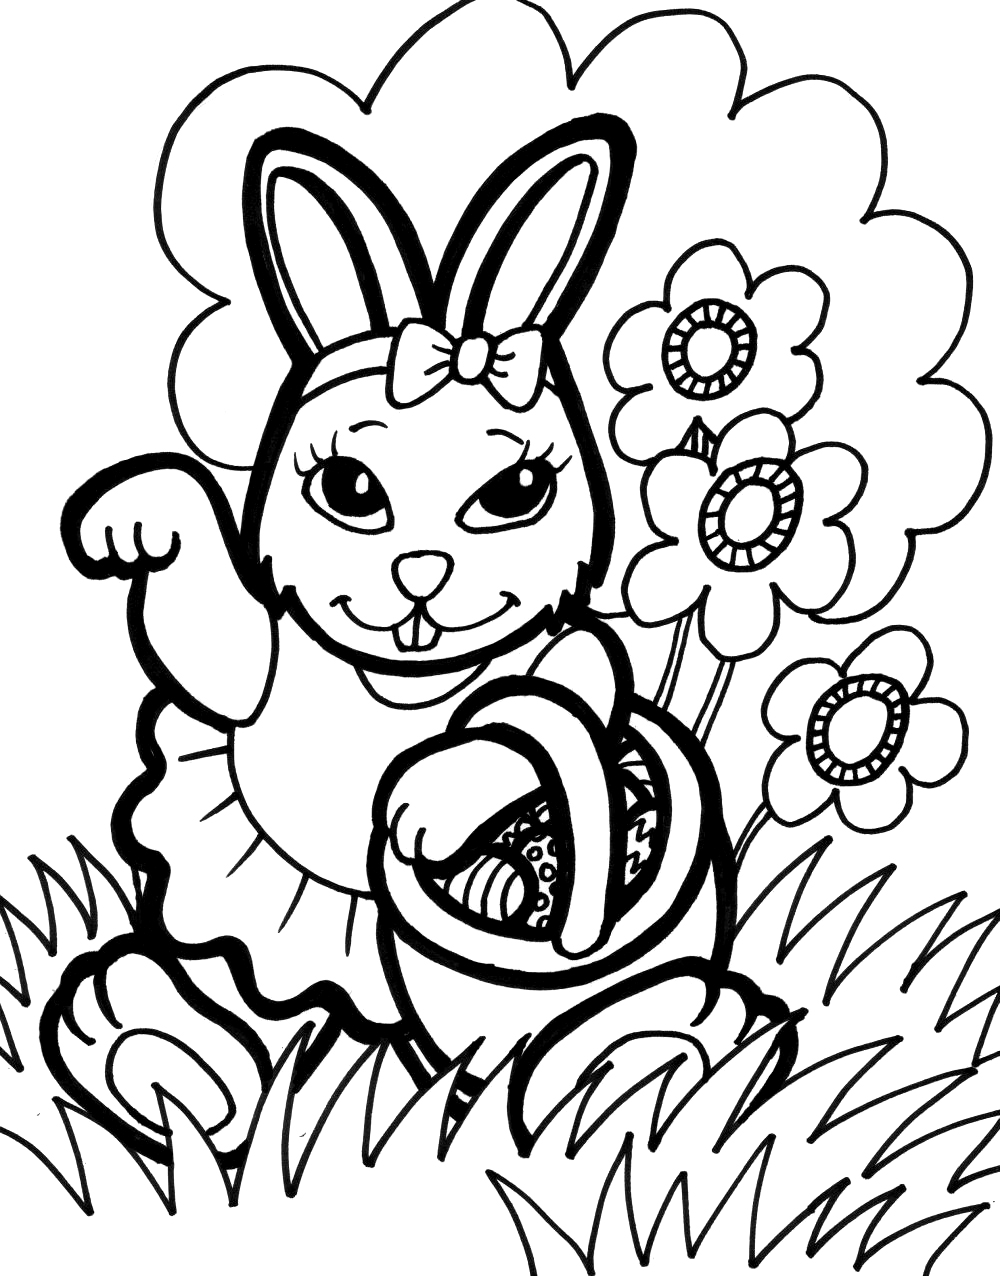 bunny coloring book rabbit free to color for kids rabbit kids coloring pages book bunny coloring